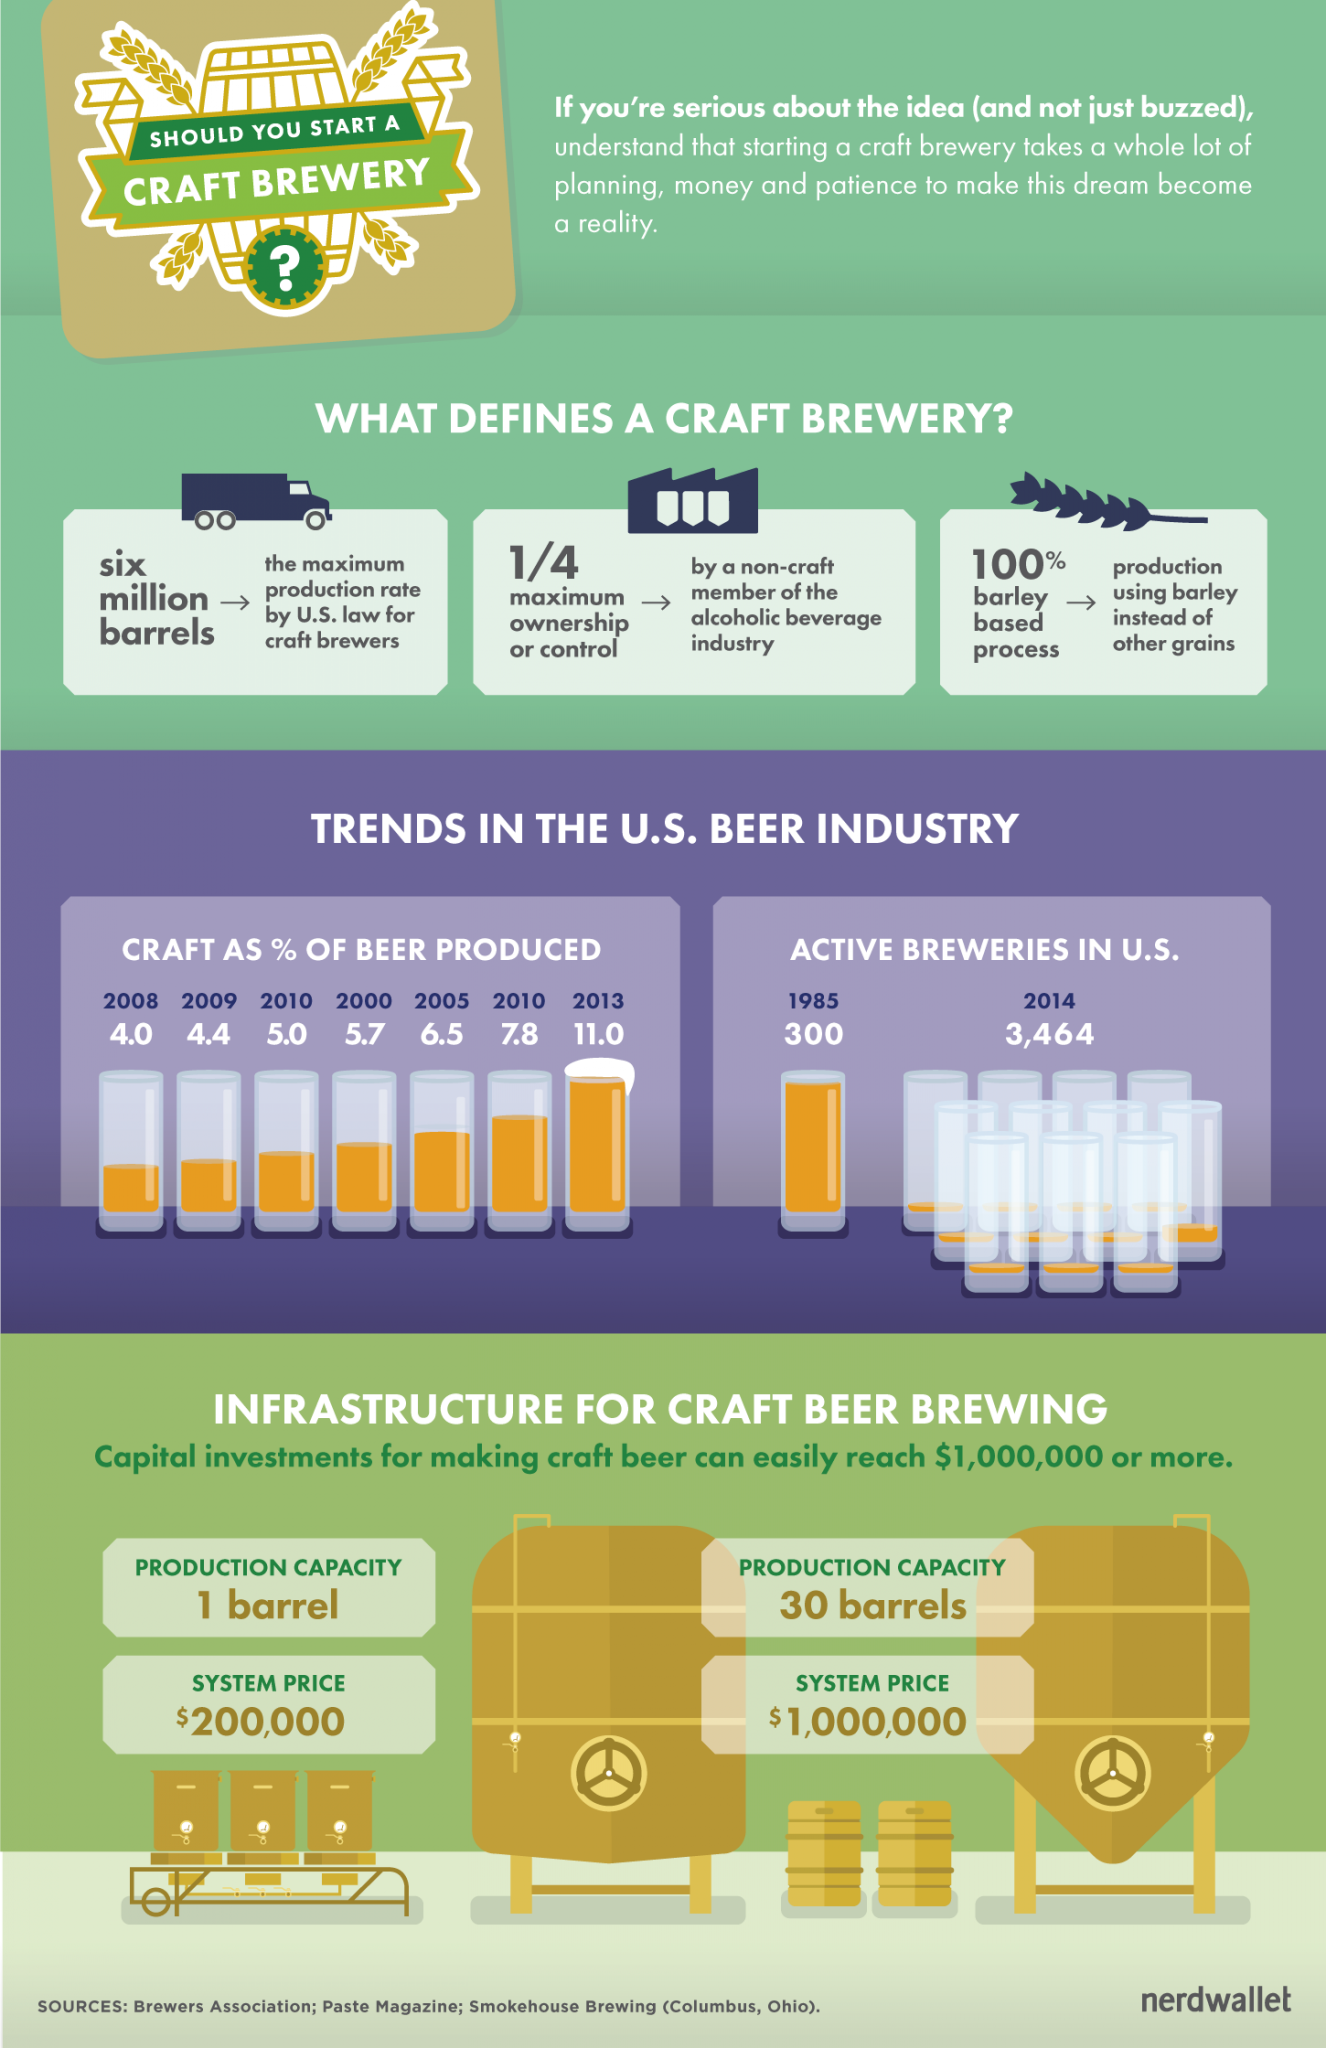 how to start a craft brewery nerdwallet